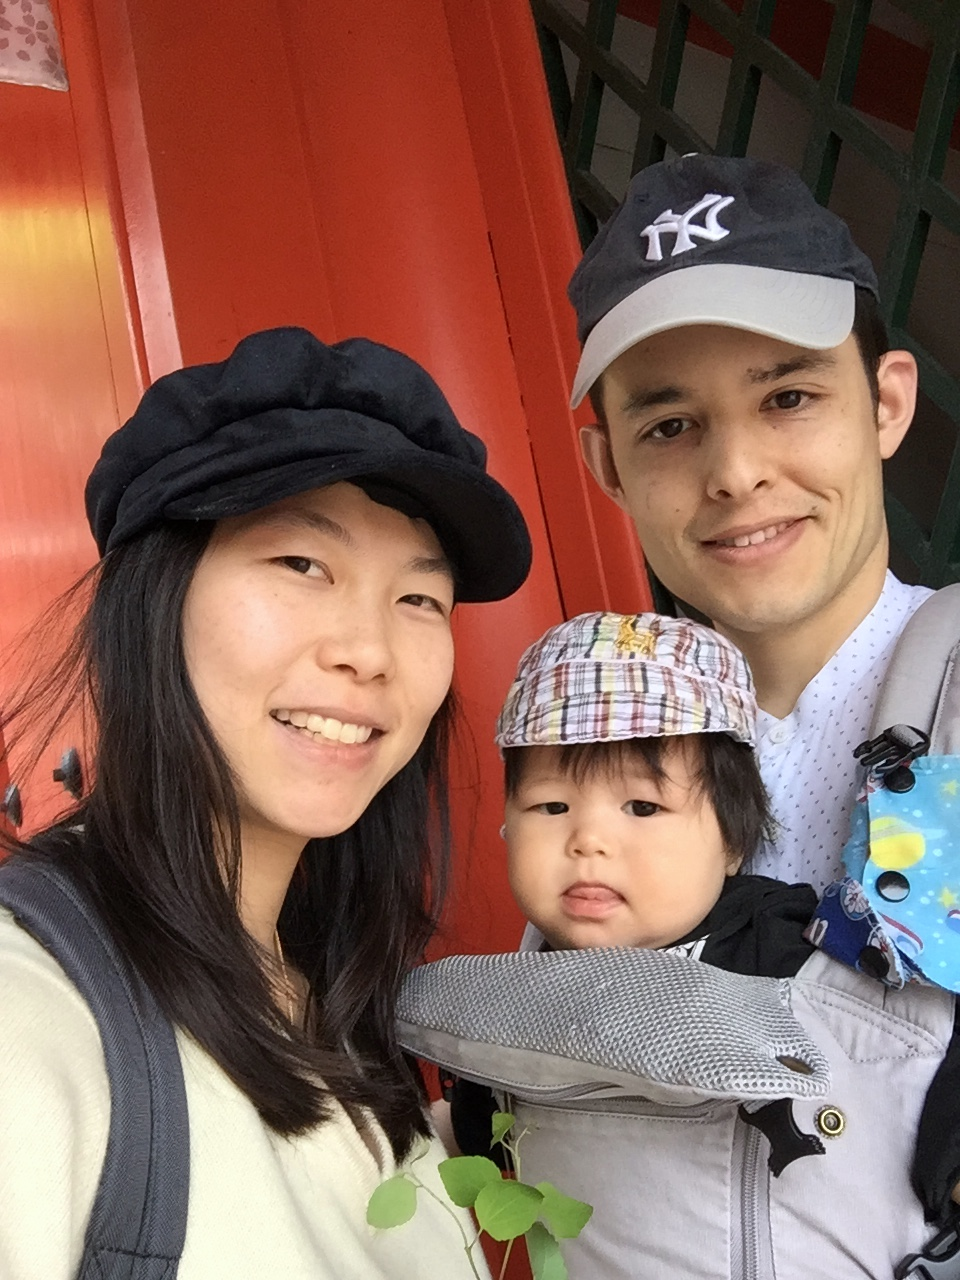 Our son K was born in Haifa, and we now live in Otsu as a family. Currently, we're expecting our second child.